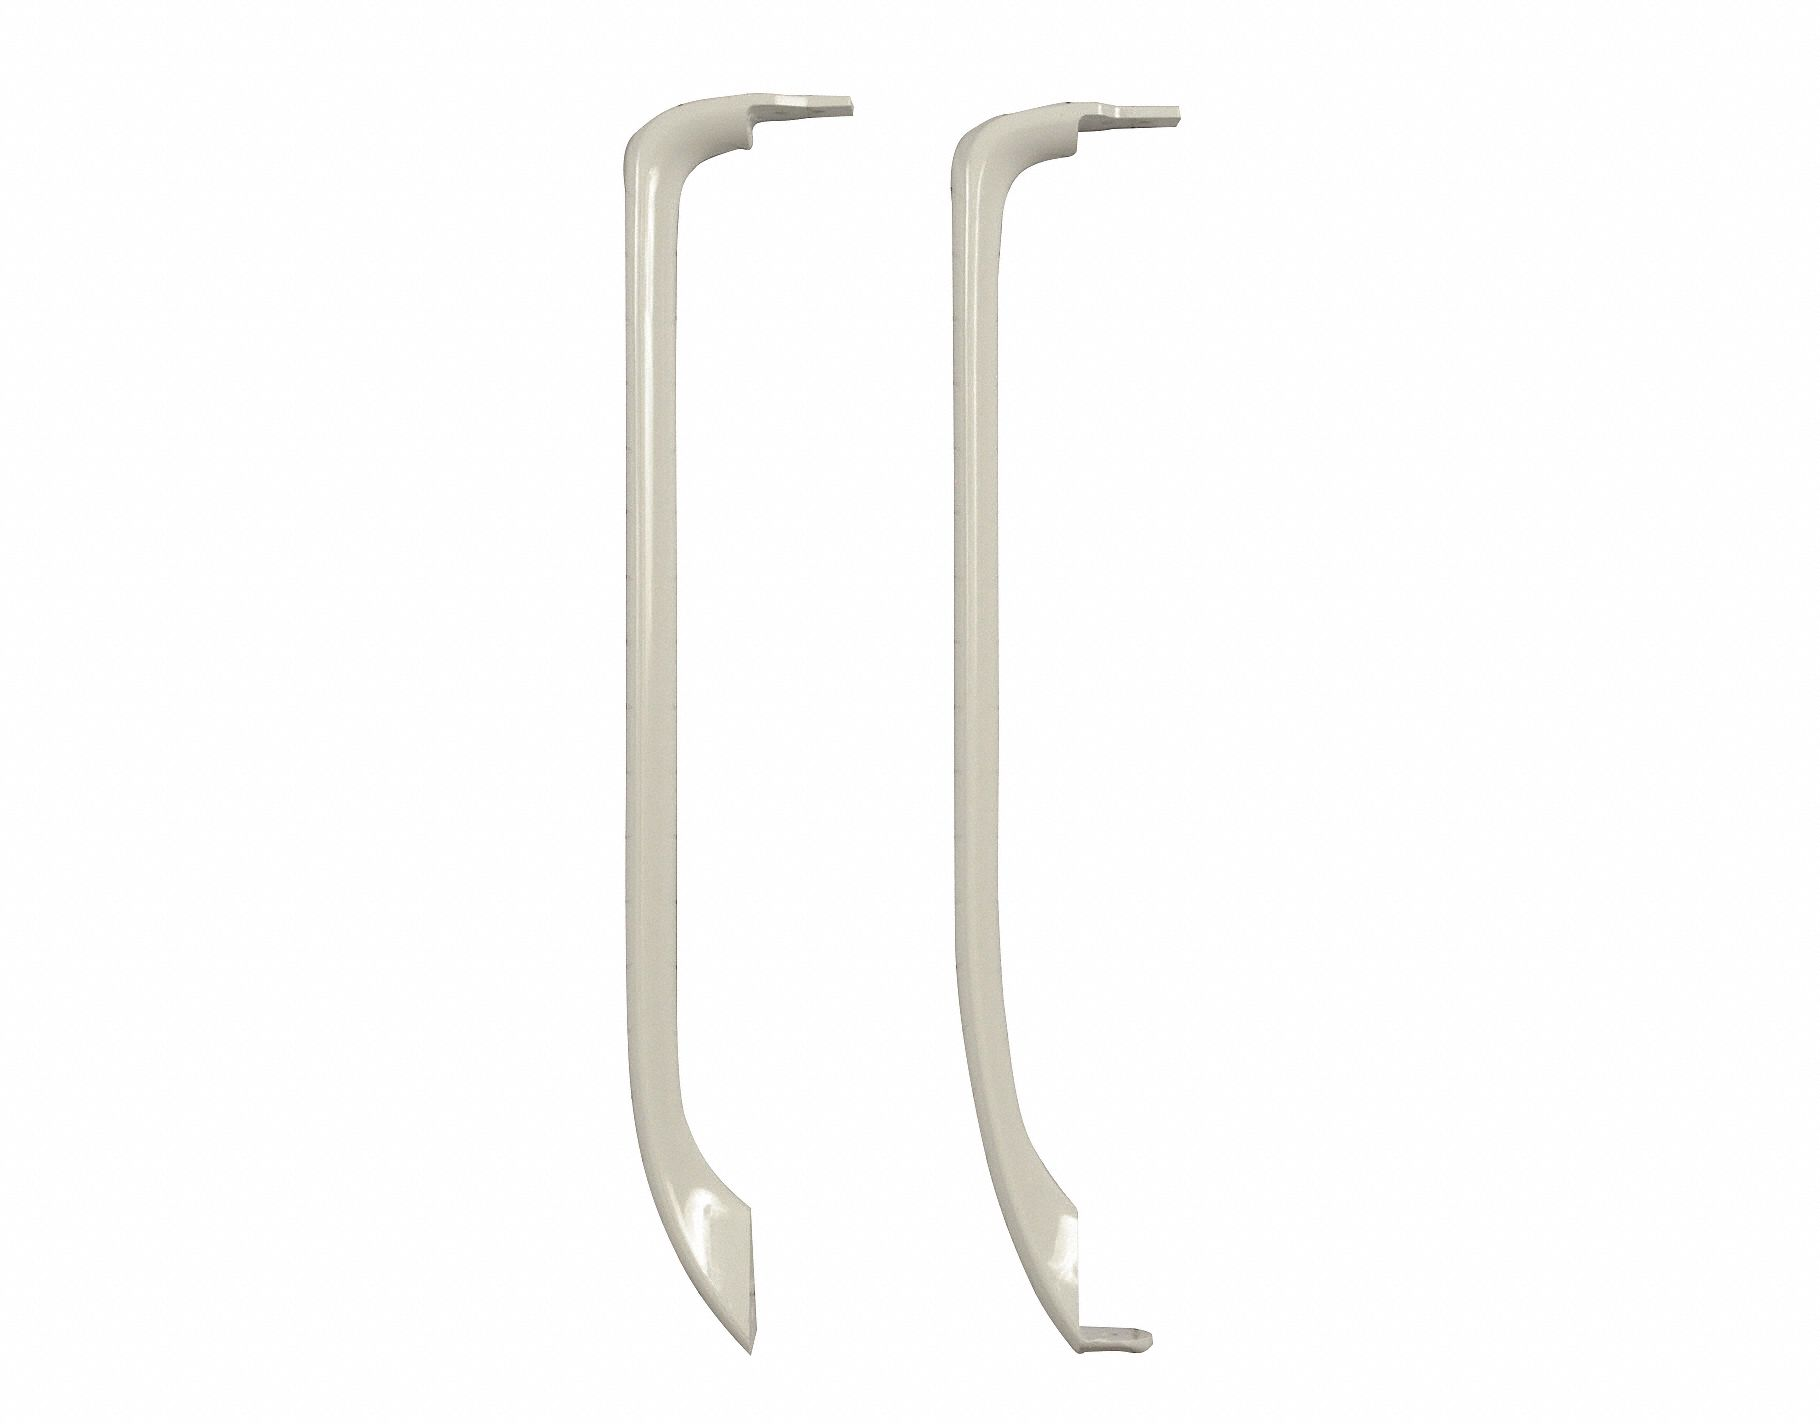 Smooth Handle Kit,  Fits Brand GE, Hotpoint, Kenmore